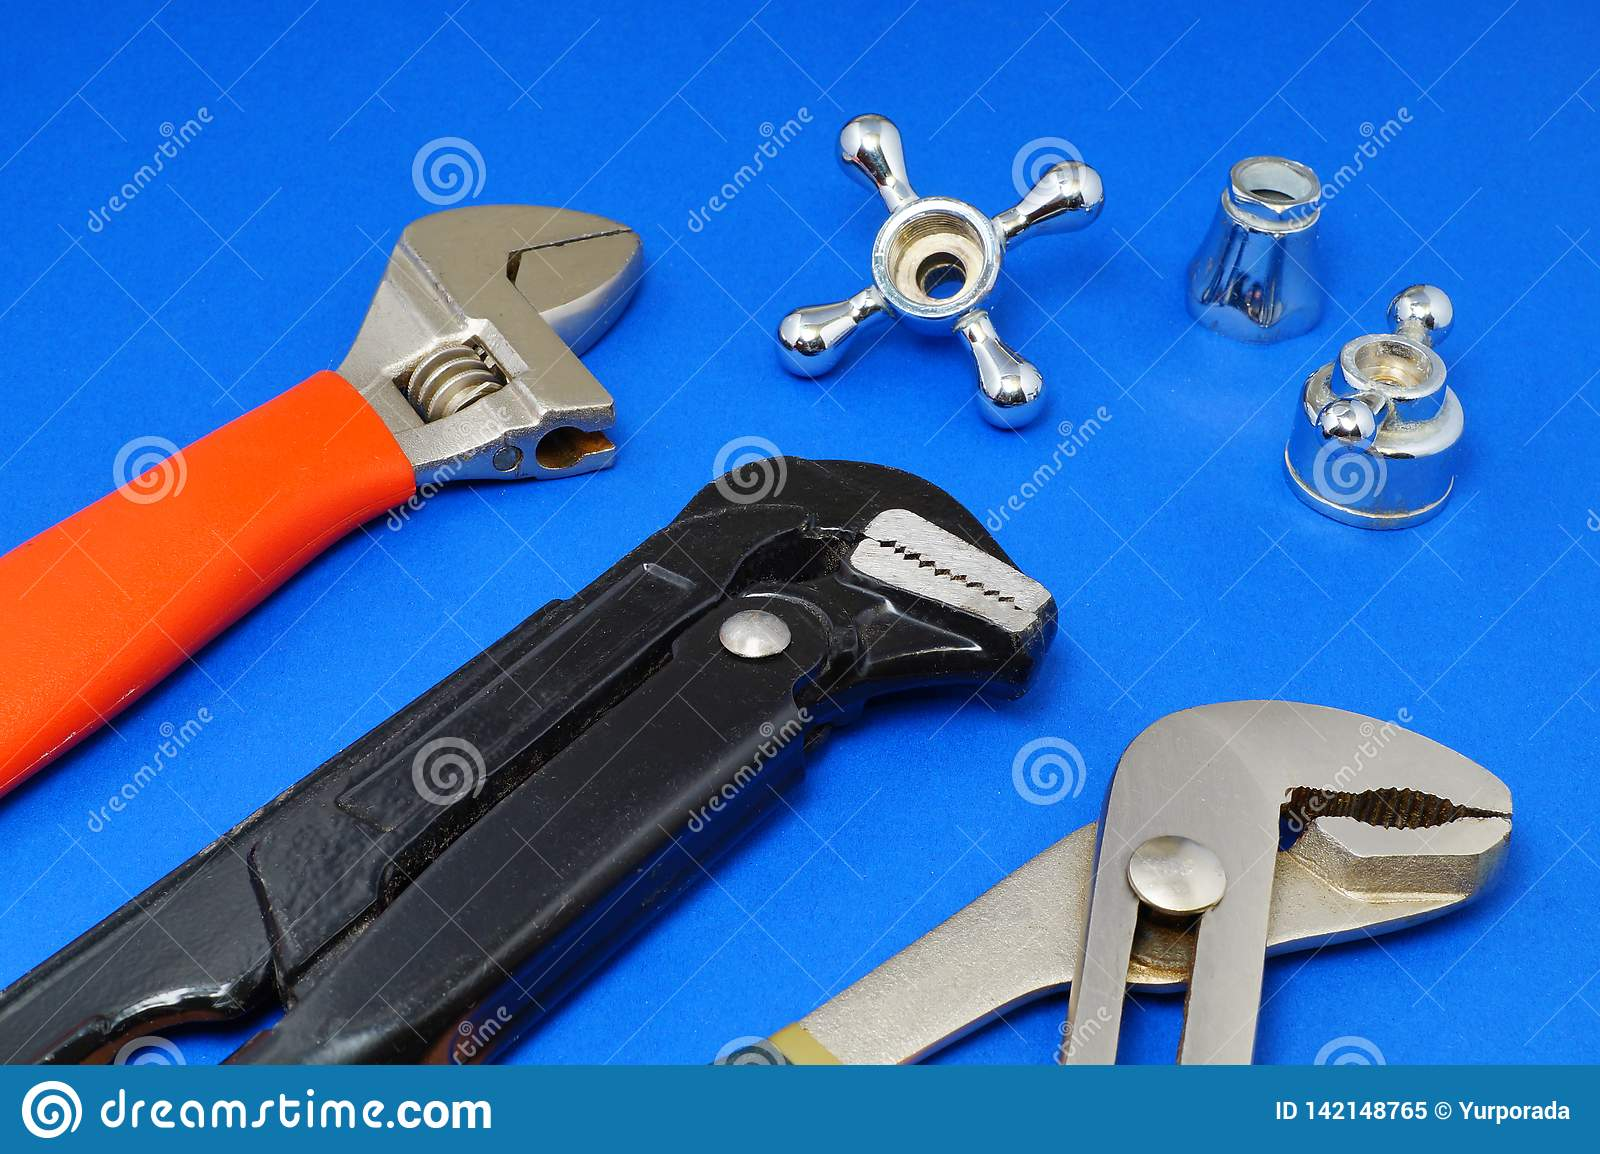 Plumbing Work Tools On A Blue Background Stock Image Image Of Background Building 142148765